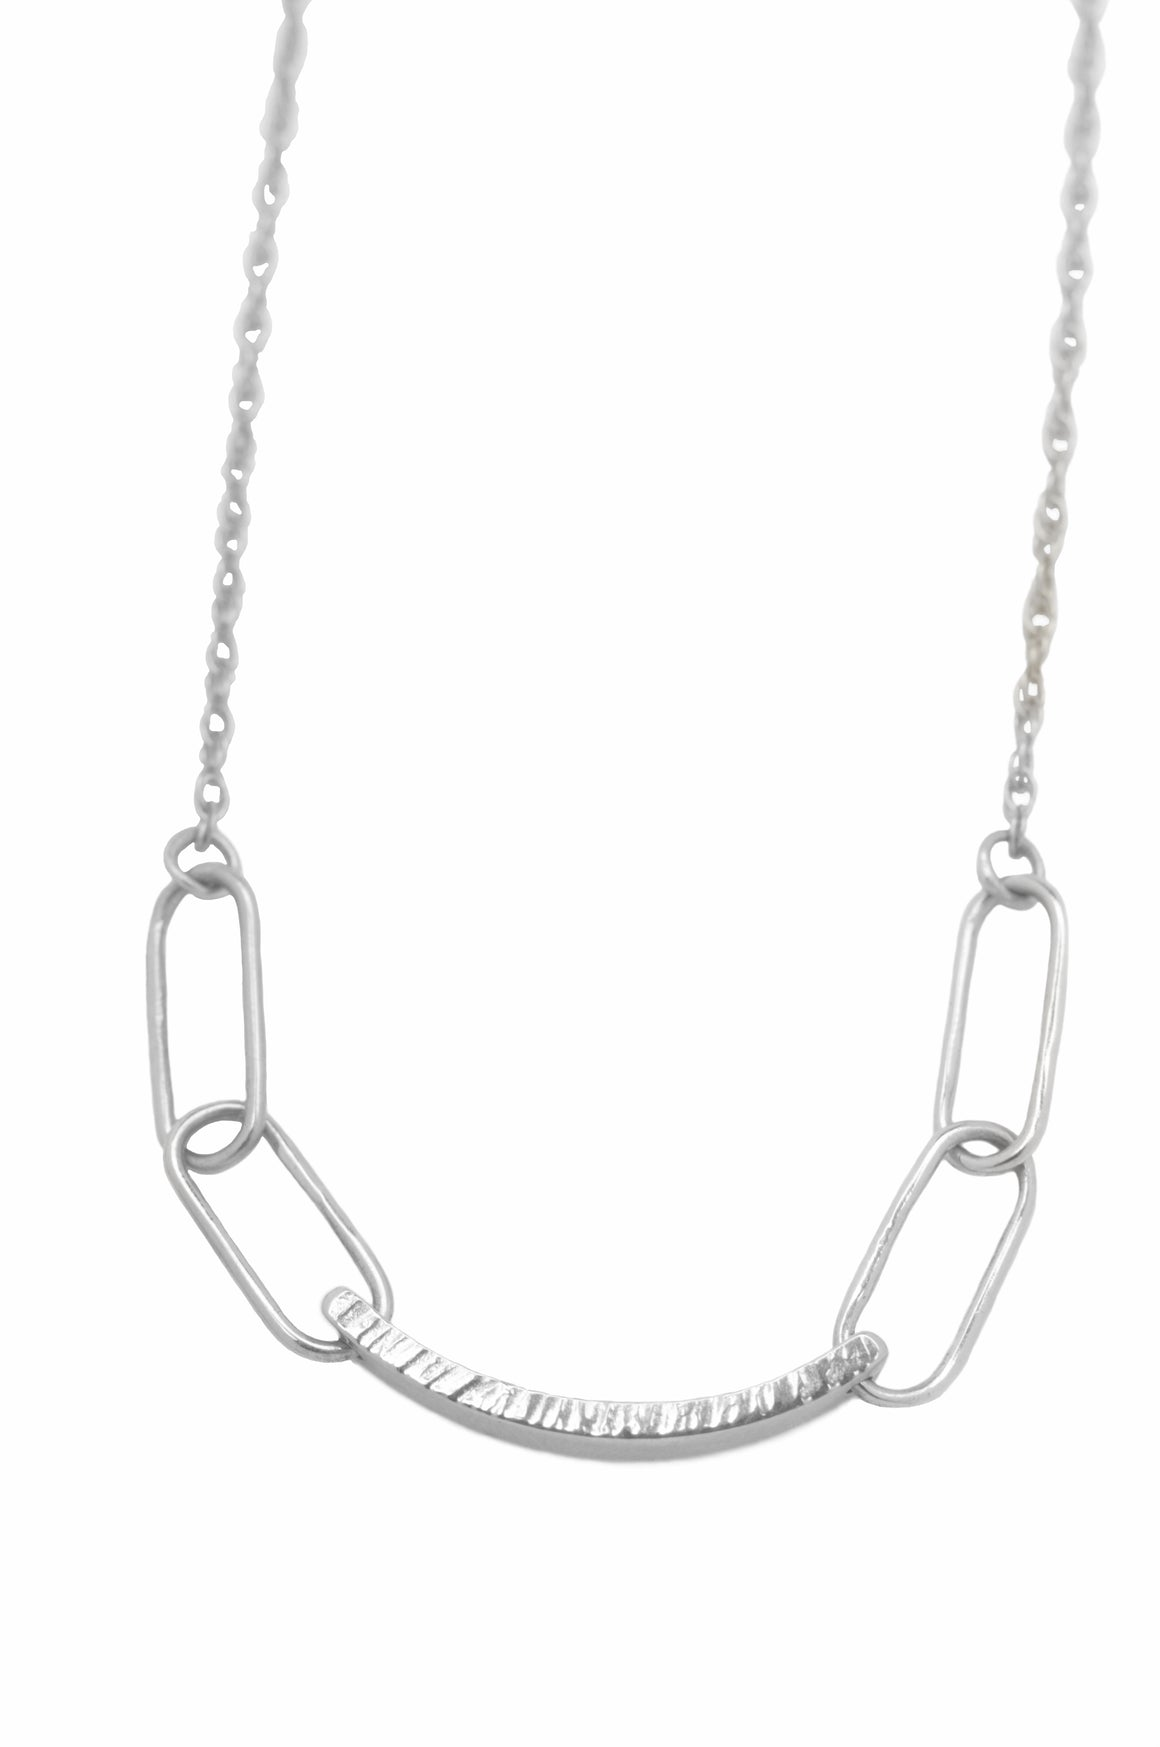 Hammered Link Necklace in 18K